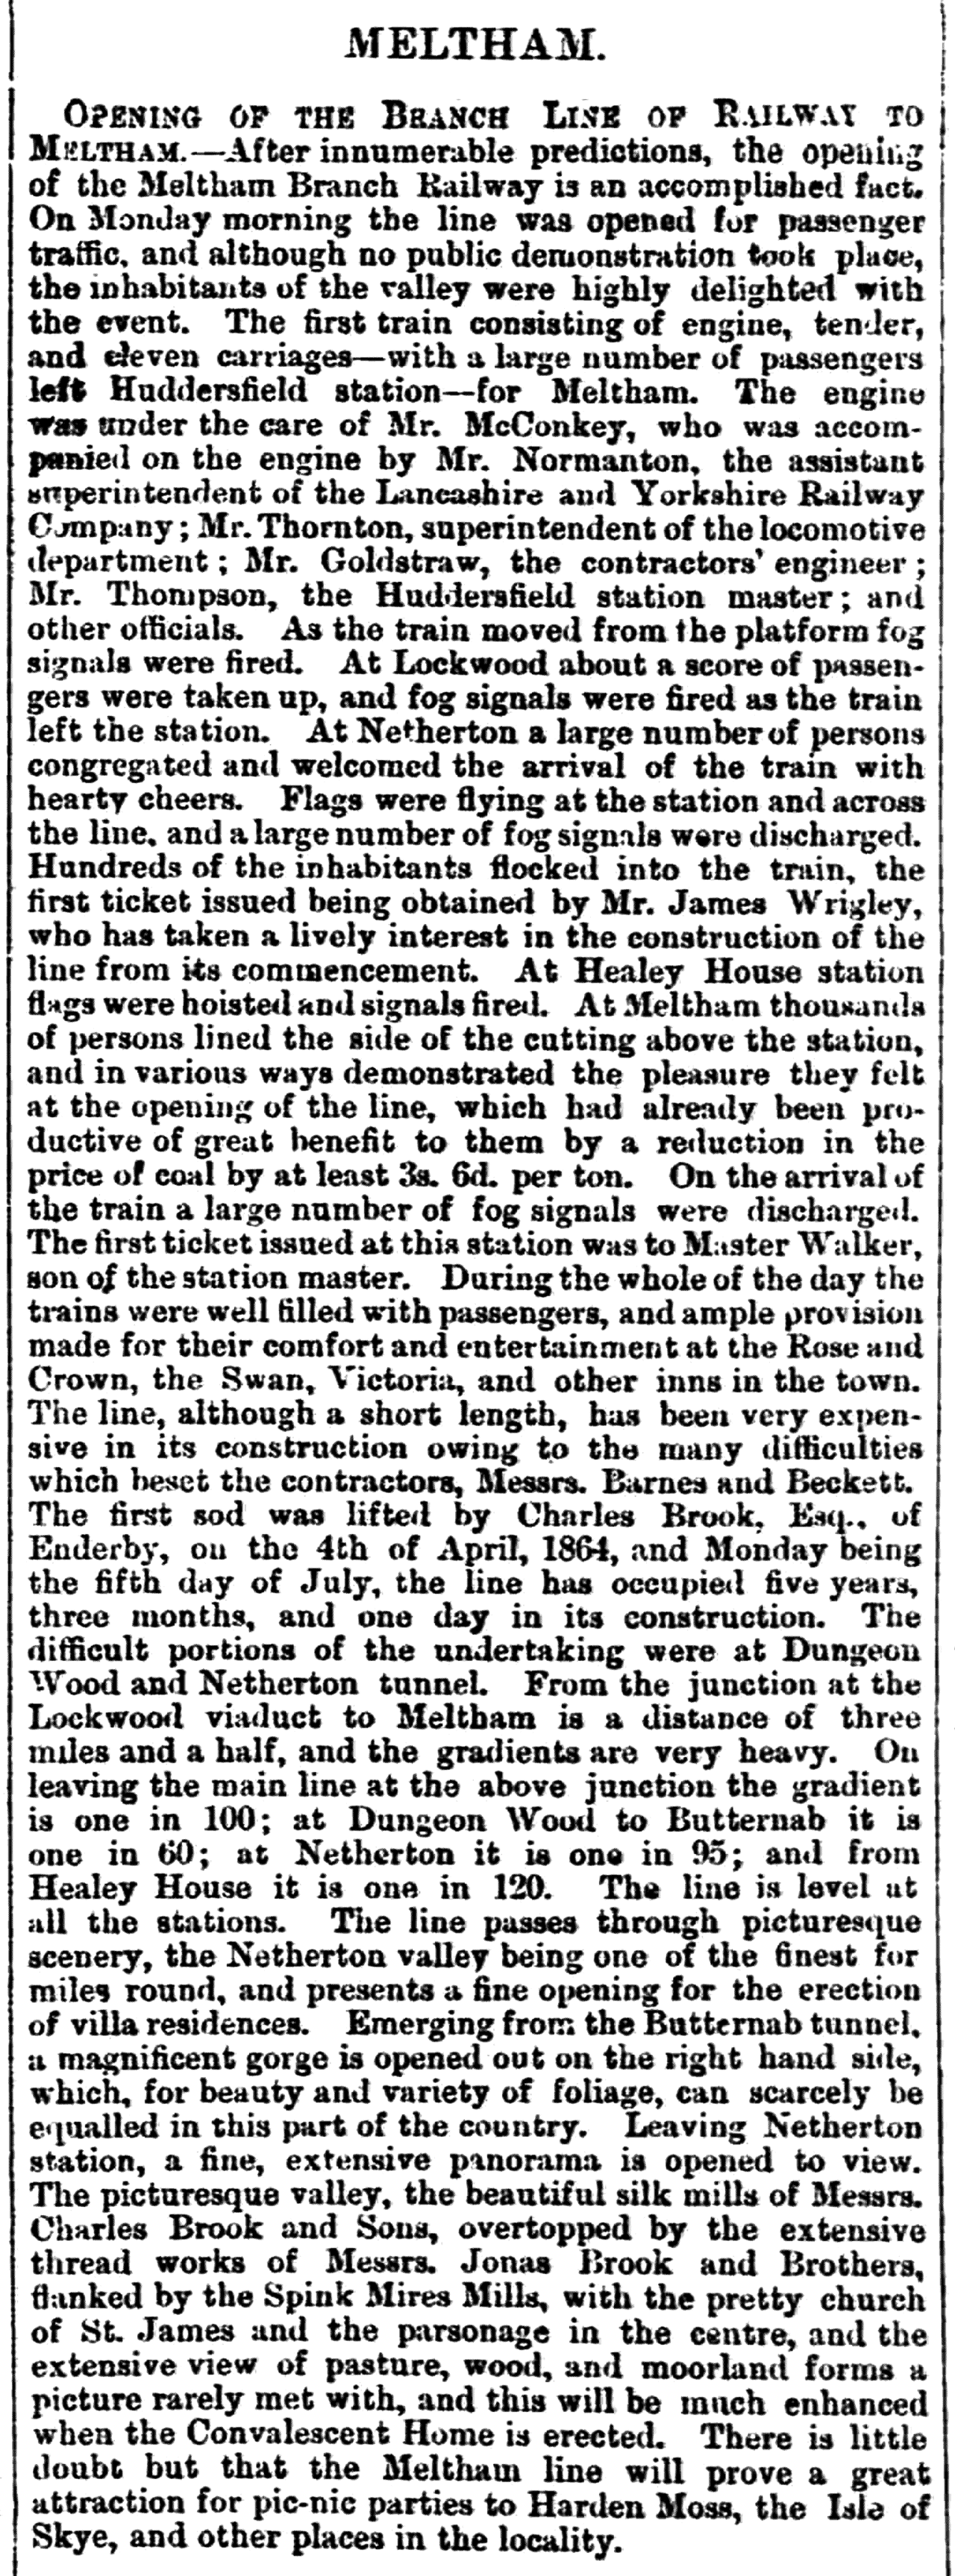 1869.07.10 Opening of the Branch Line of Railway to Meltham - Huddersfield Chronicle 10 July 1869